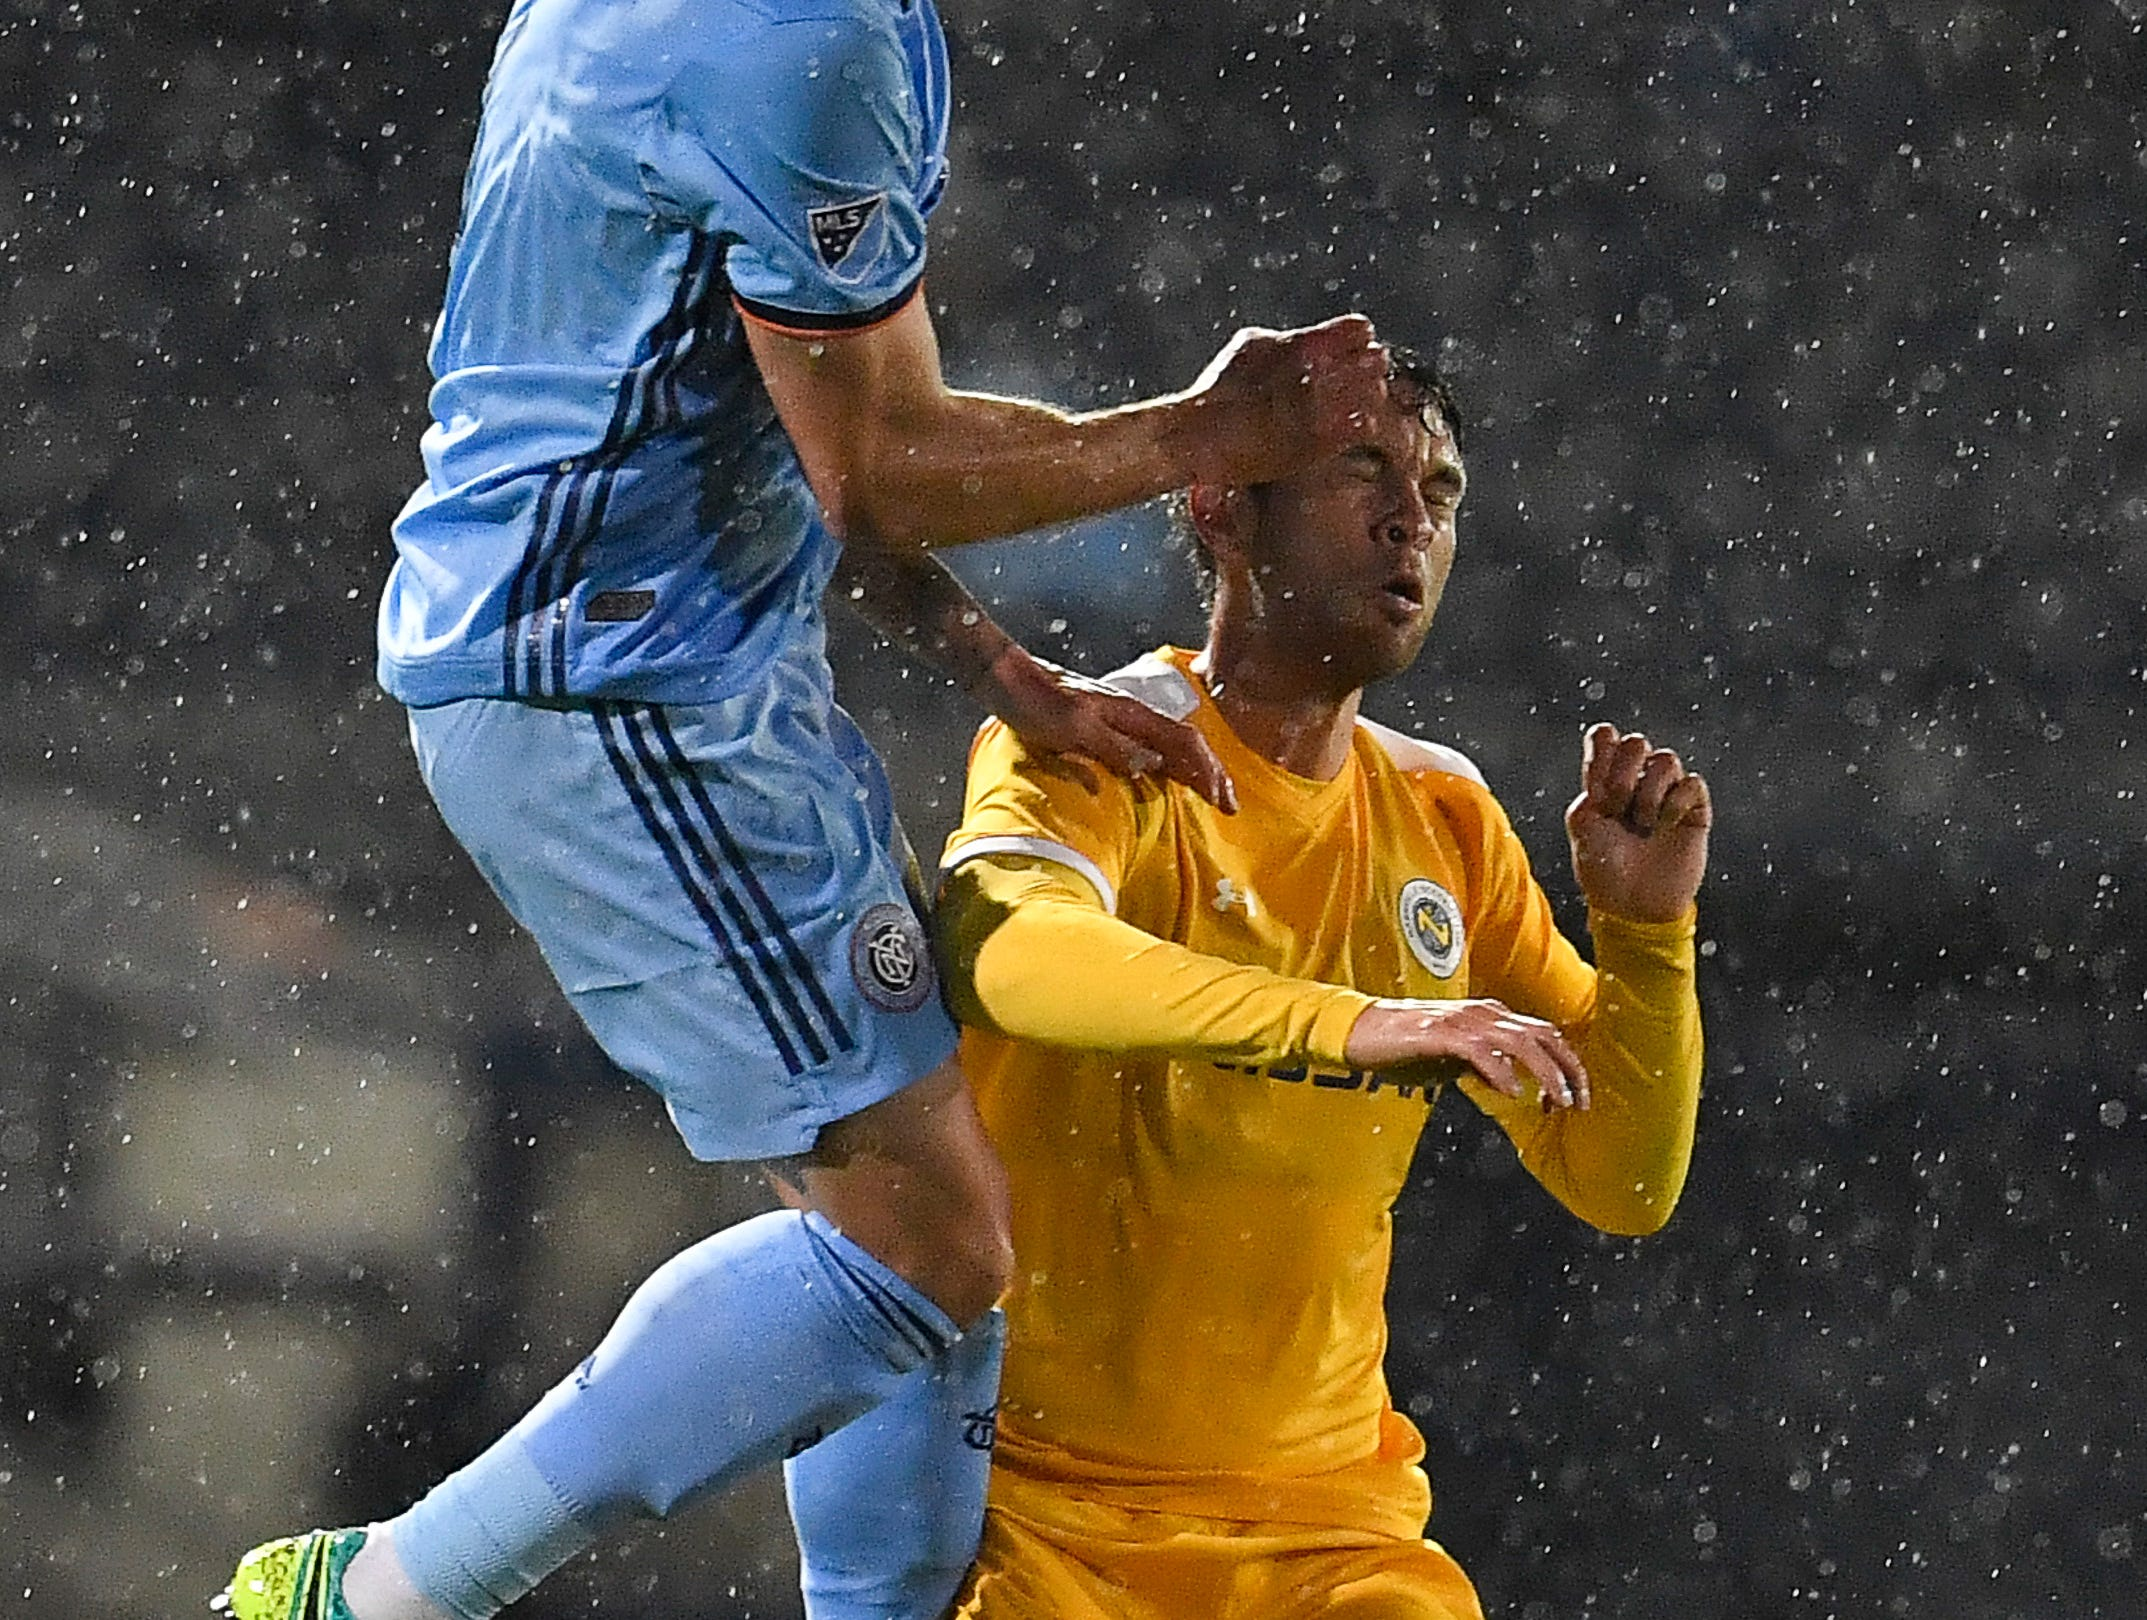 New York City defender Maxime Chanot (4) heads the ball over Nashville SC forward Cameron Lancaster (9) during the first half at First Tennessee Park Friday, Feb. 22, 2019 in Nashville, Tenn.